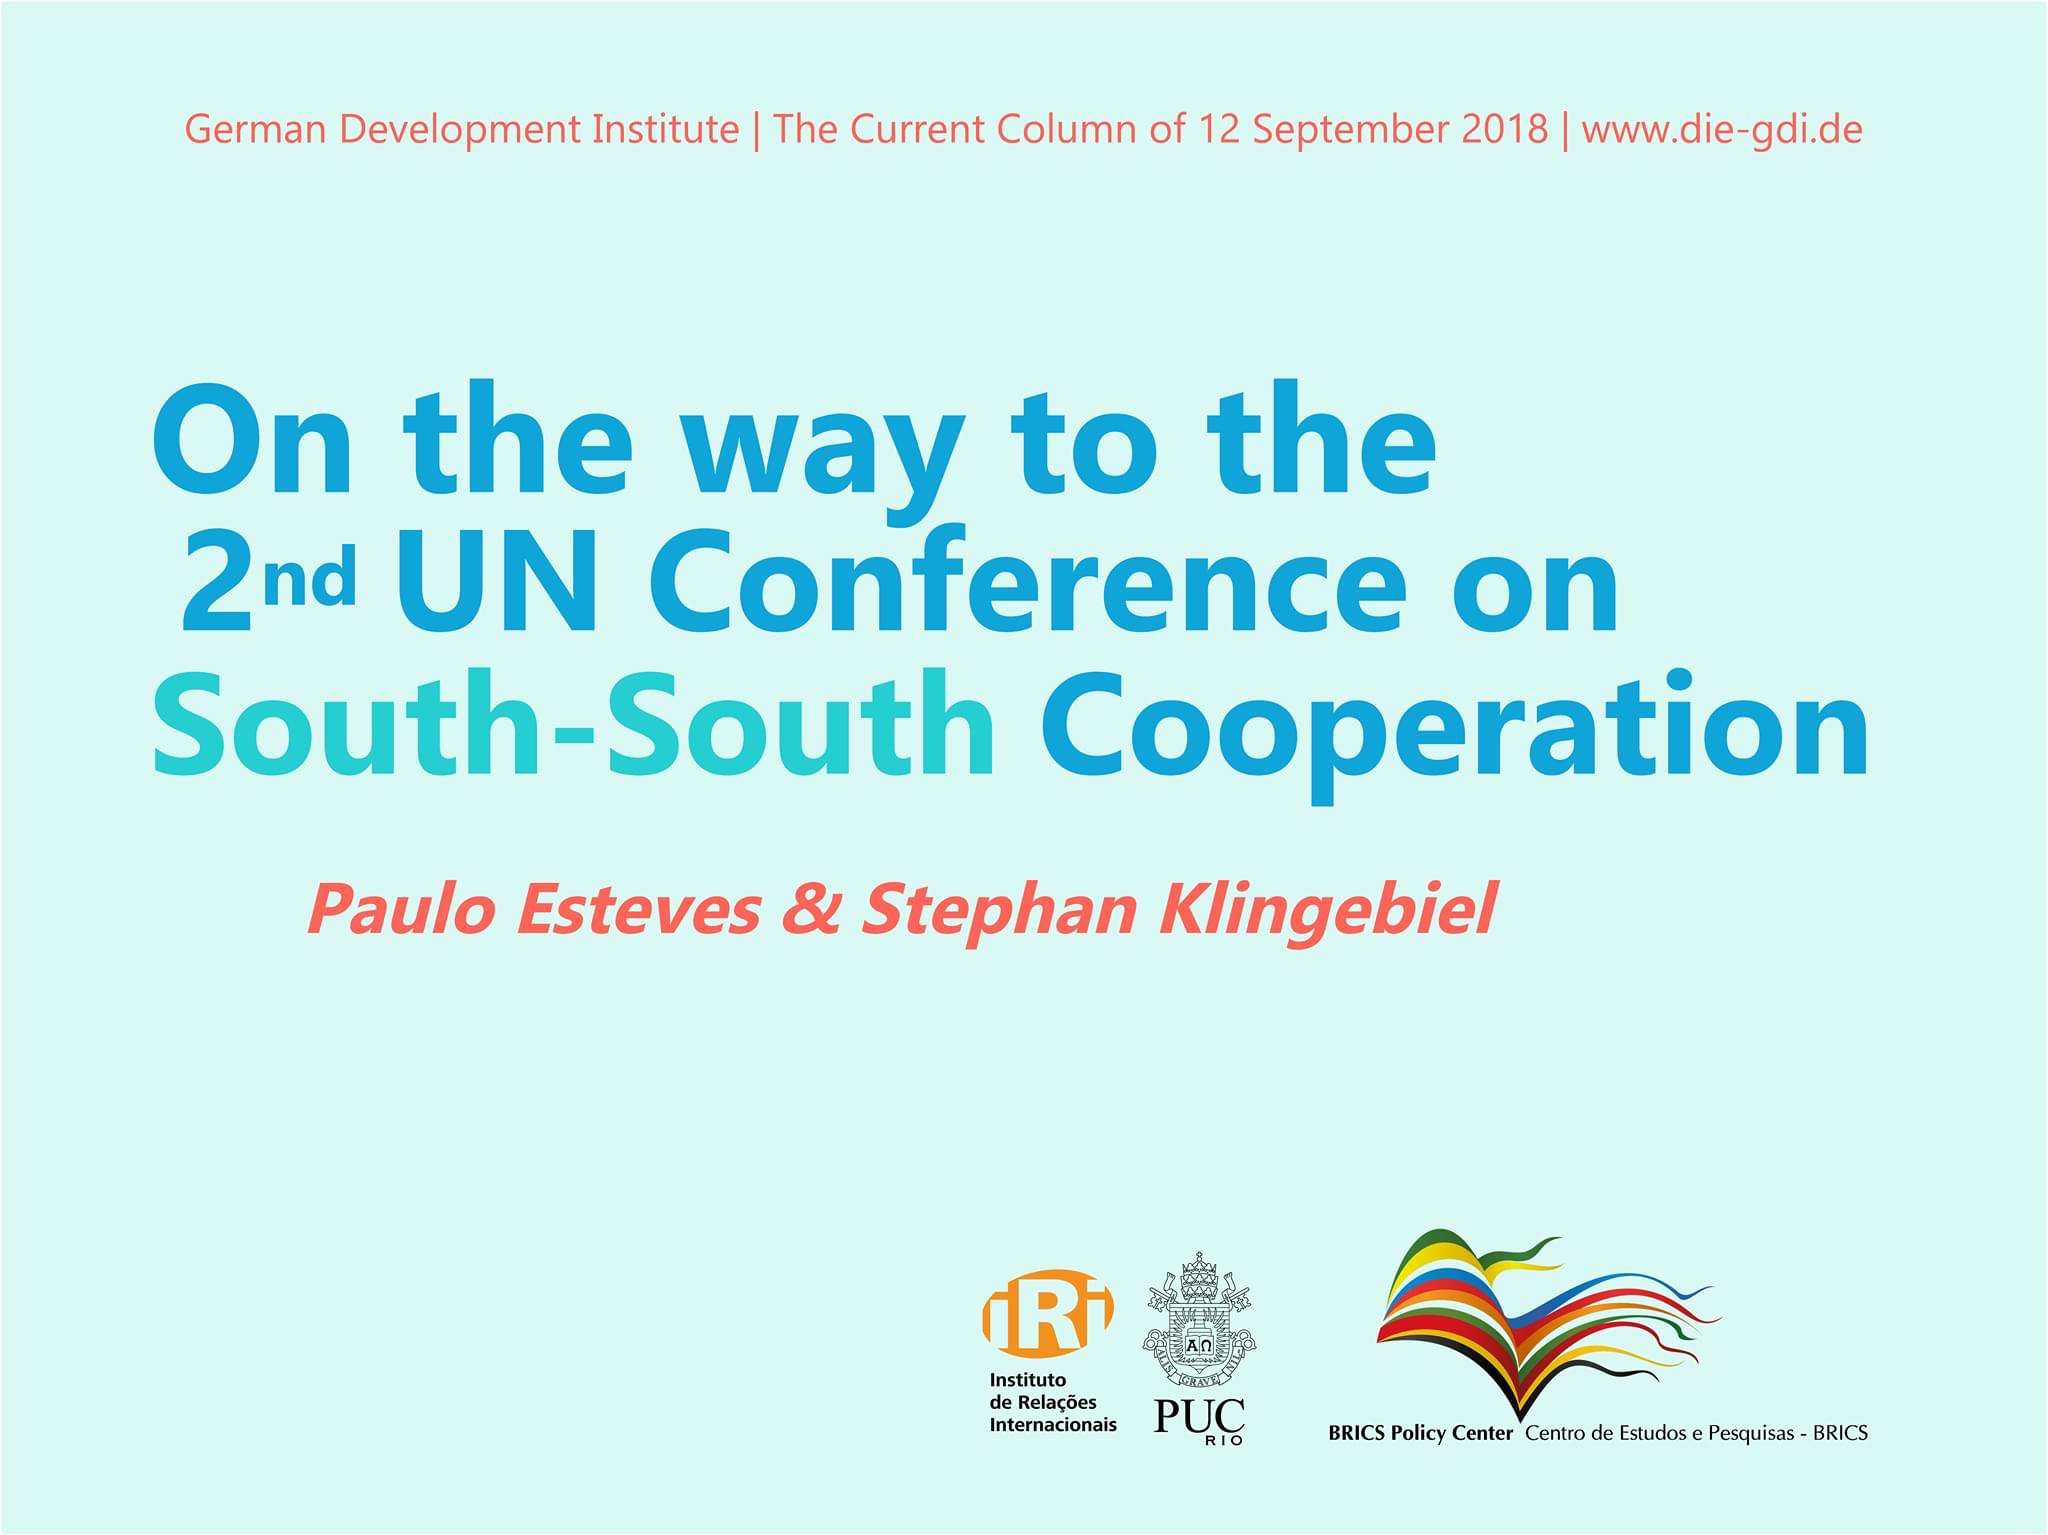 On the way to the second UN Conference on South-South Cooperation